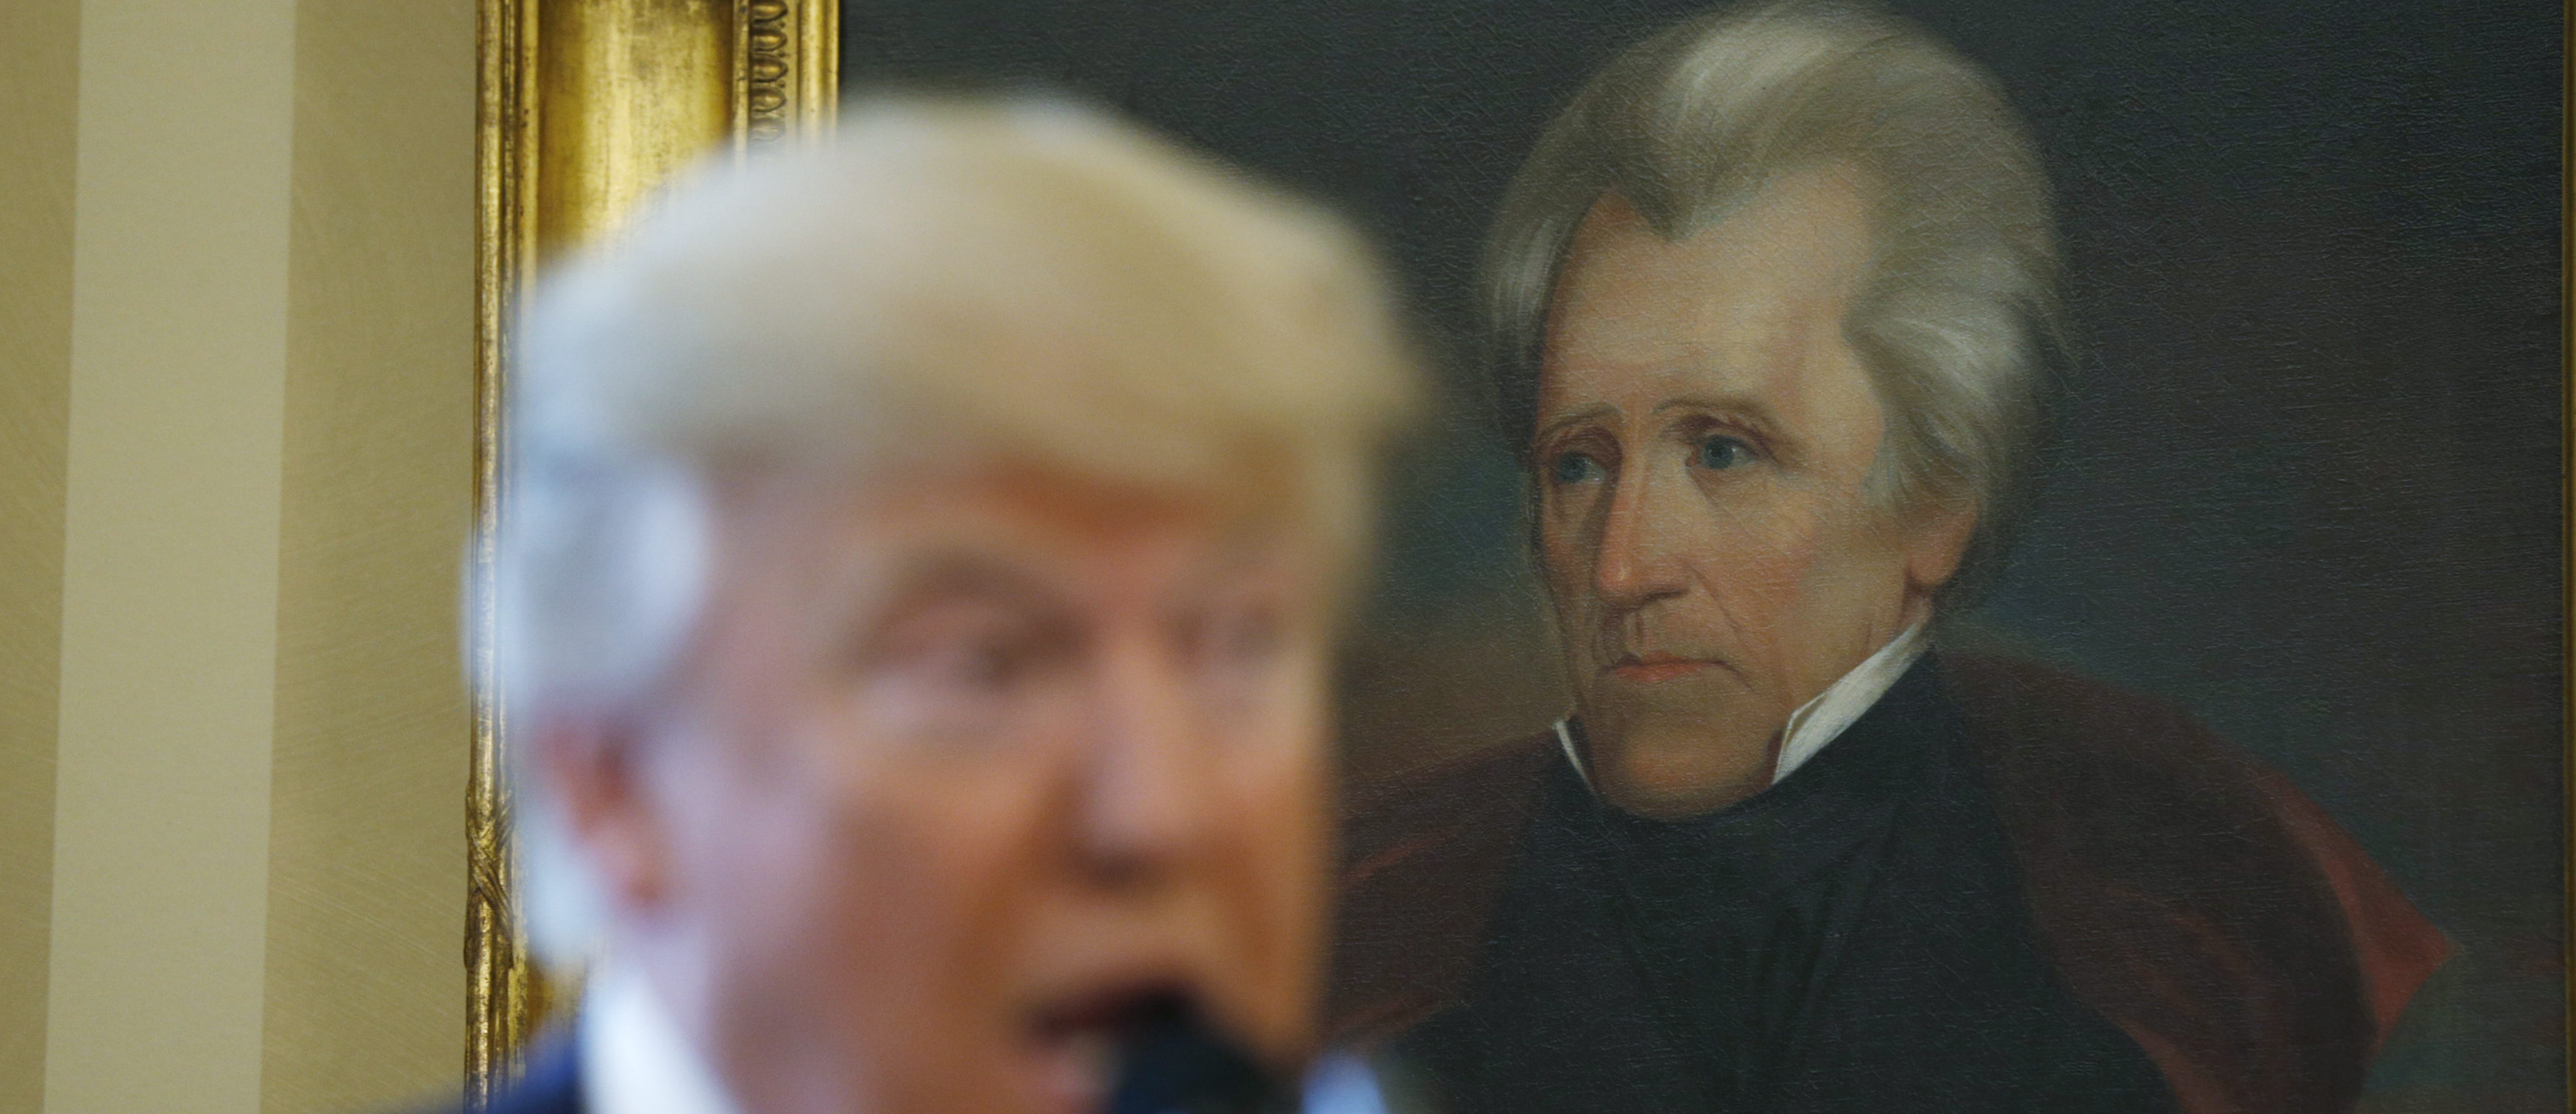 U.S. President Donald Trump speaks in front of a portrait of former U.S. President Andrew Jackson during a swearing-in ceremony for new Attorney General Jeff Sessions at the White House in Washington, U.S., February 9, 2017. REUTERS/Kevin Lamarque - RTX30C1N